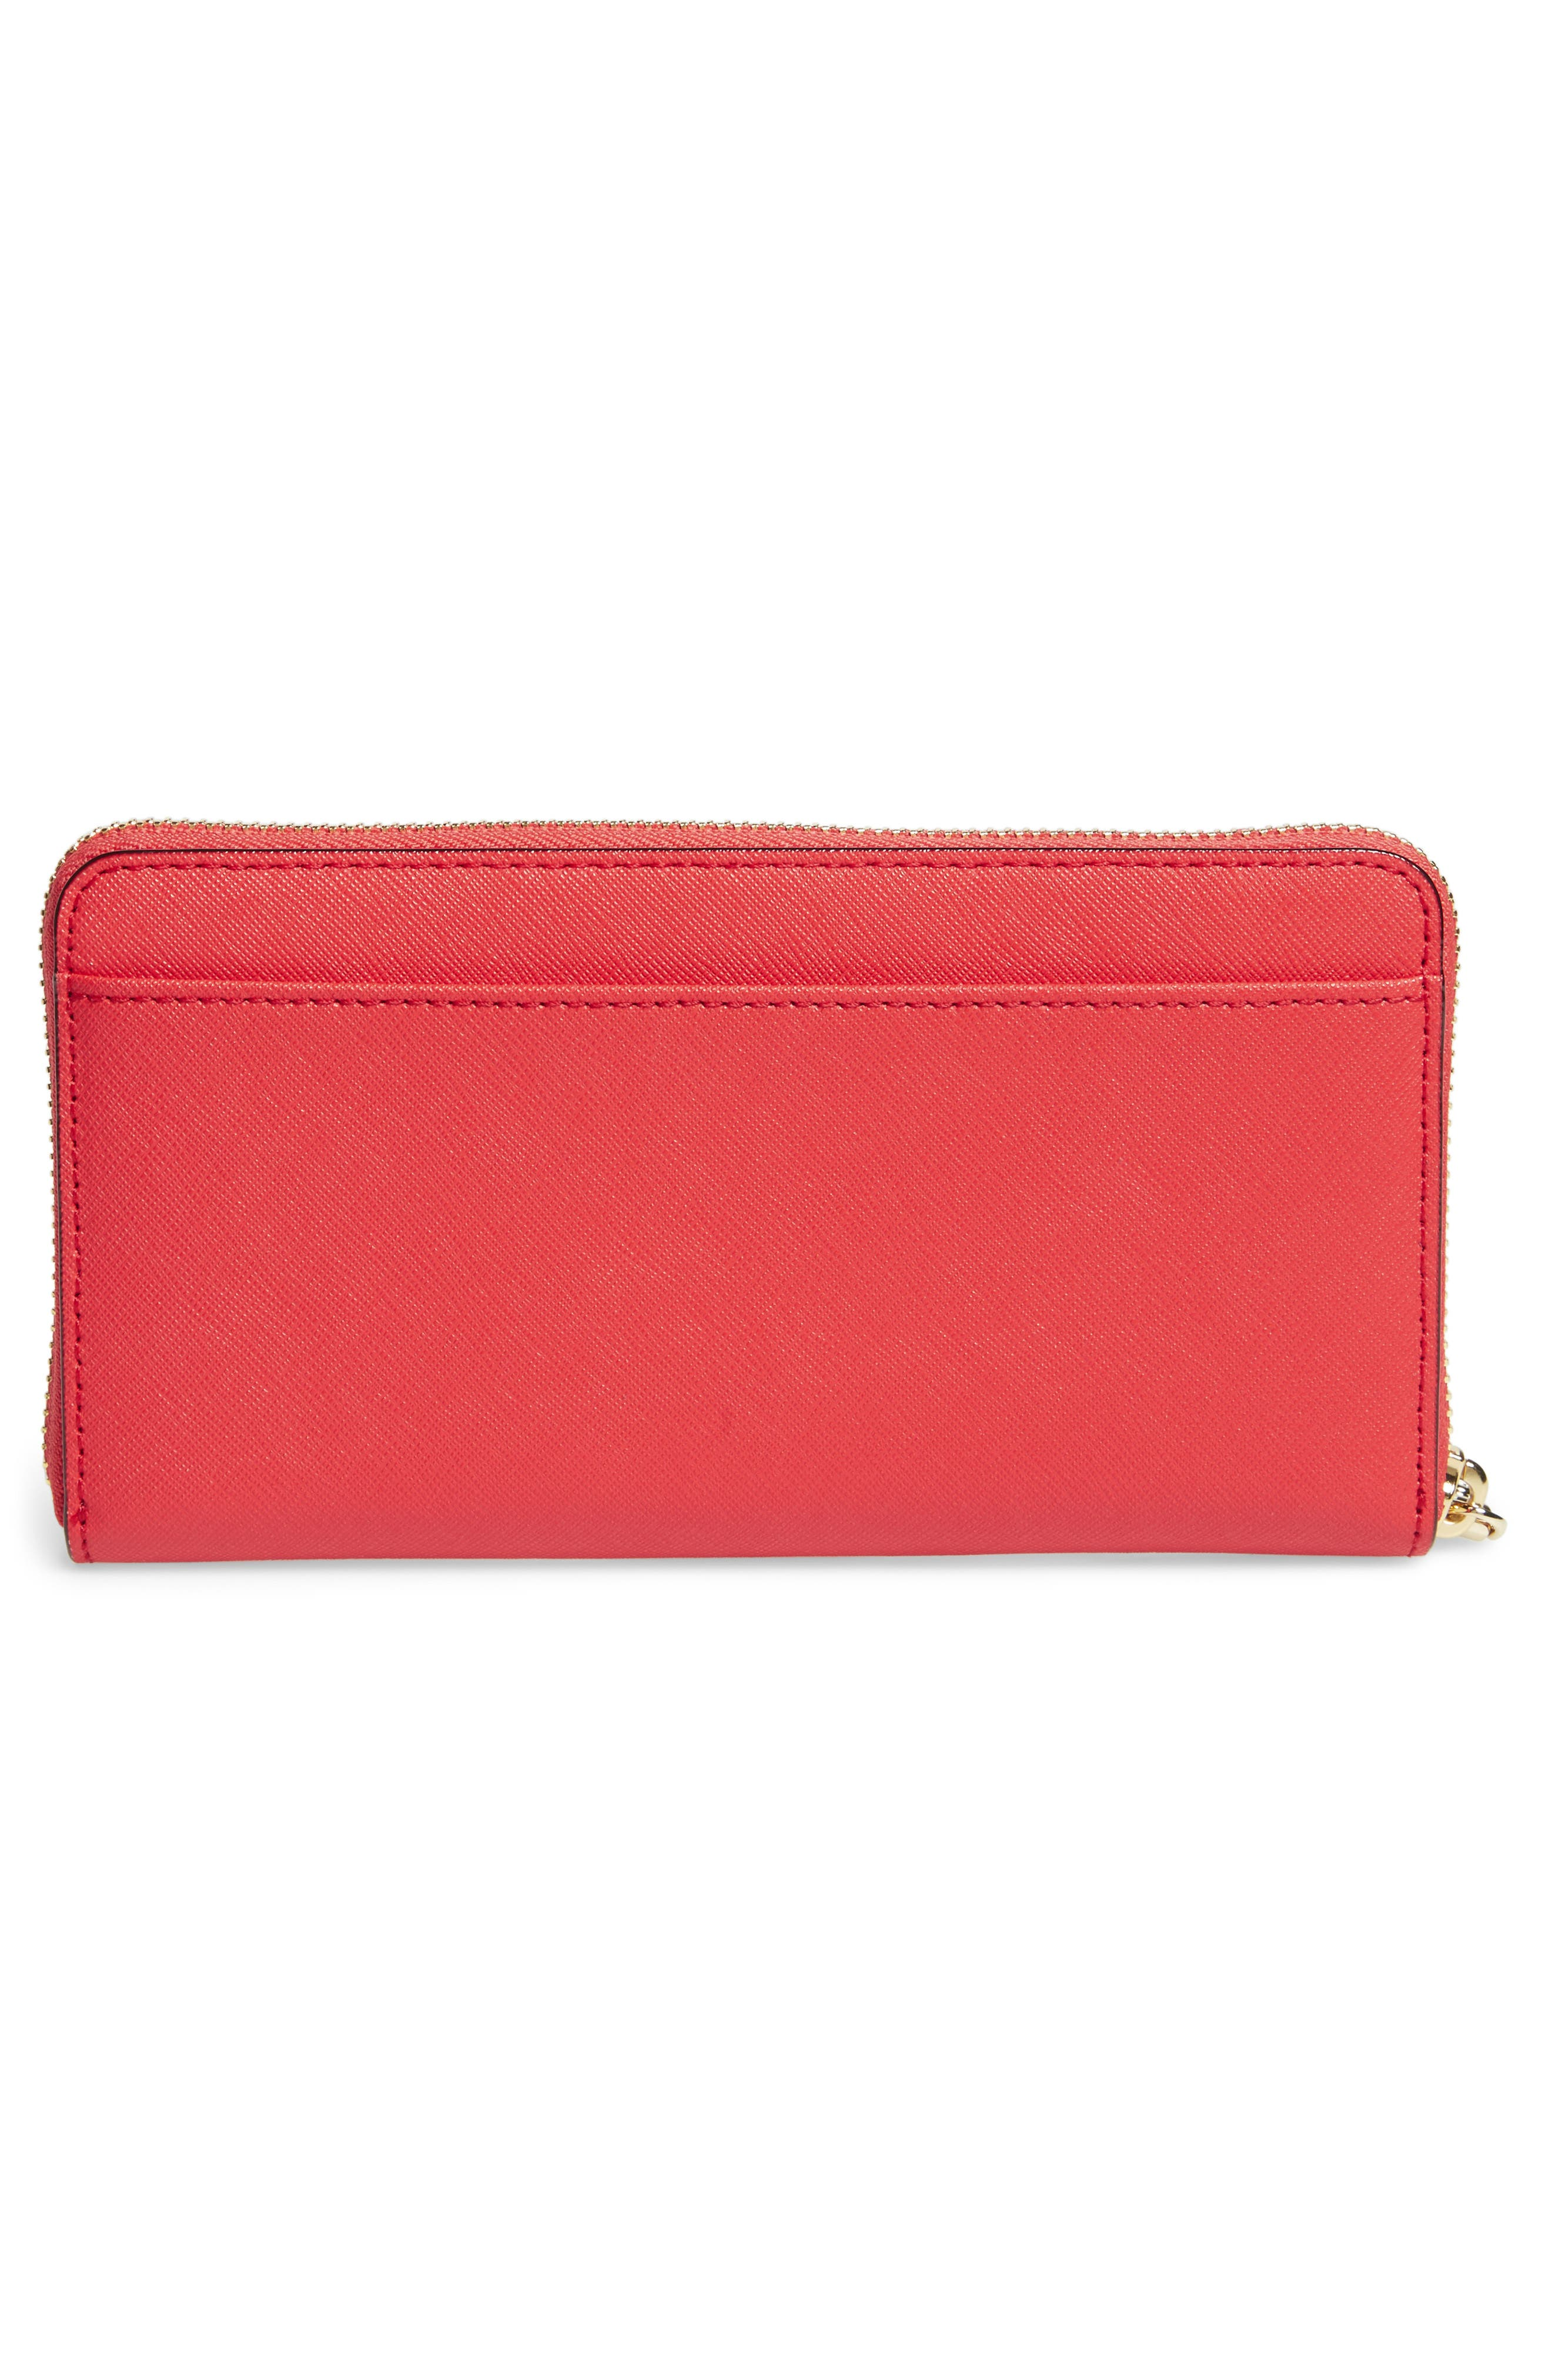 'cameron street - lacey' leather wallet,                             Alternate thumbnail 57, color,